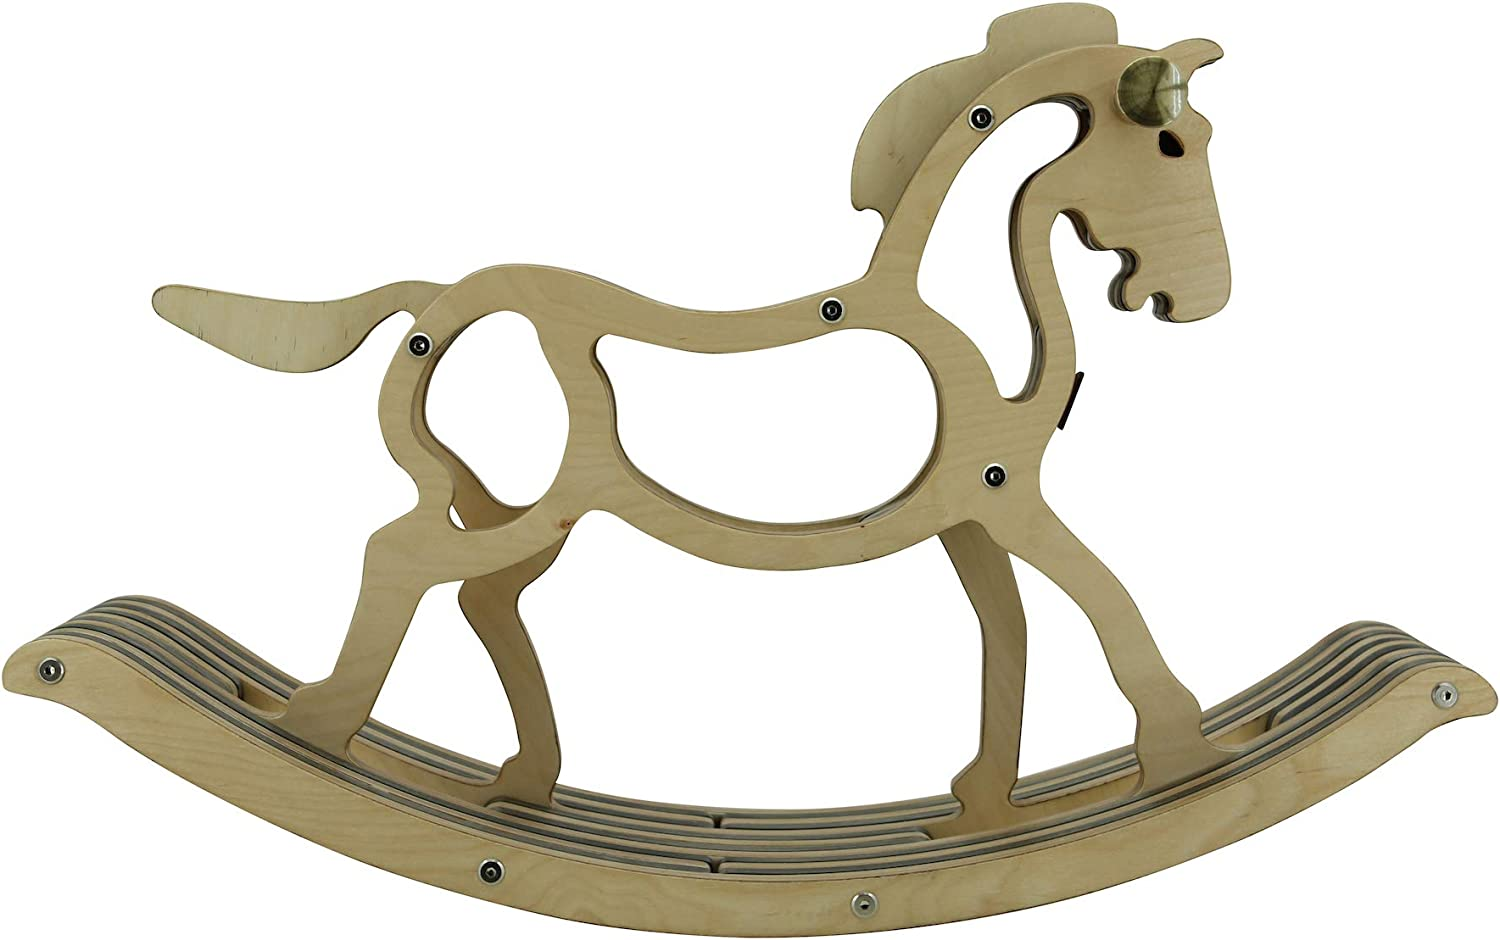 Sweety Toys 11148 rocking horse wooden